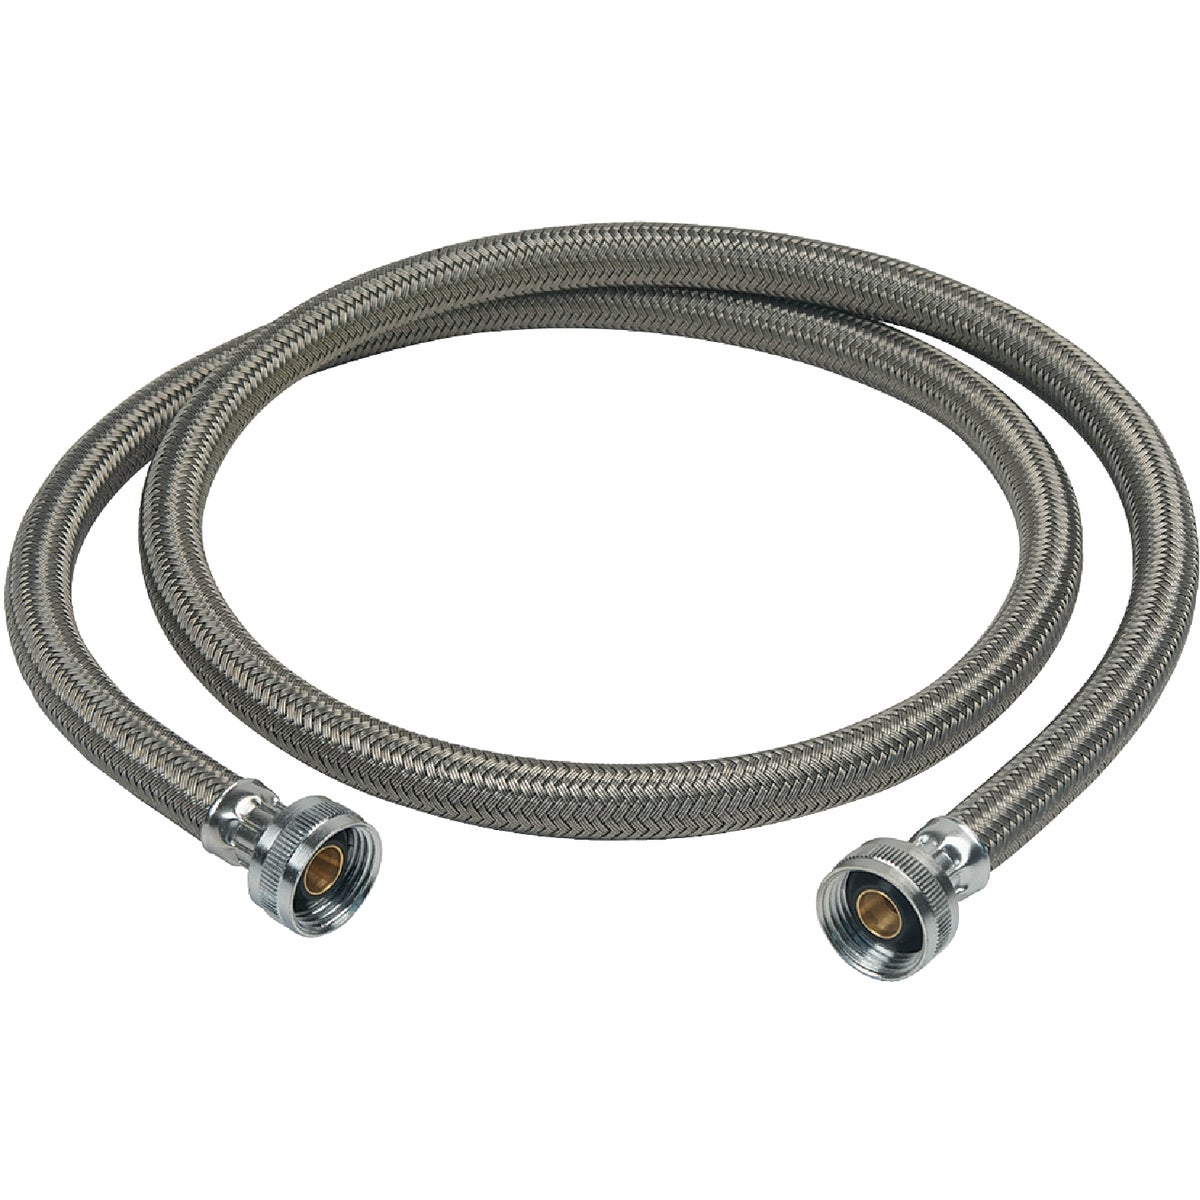 5' WASH HOSE - BL12-60WA P by Brass Craft